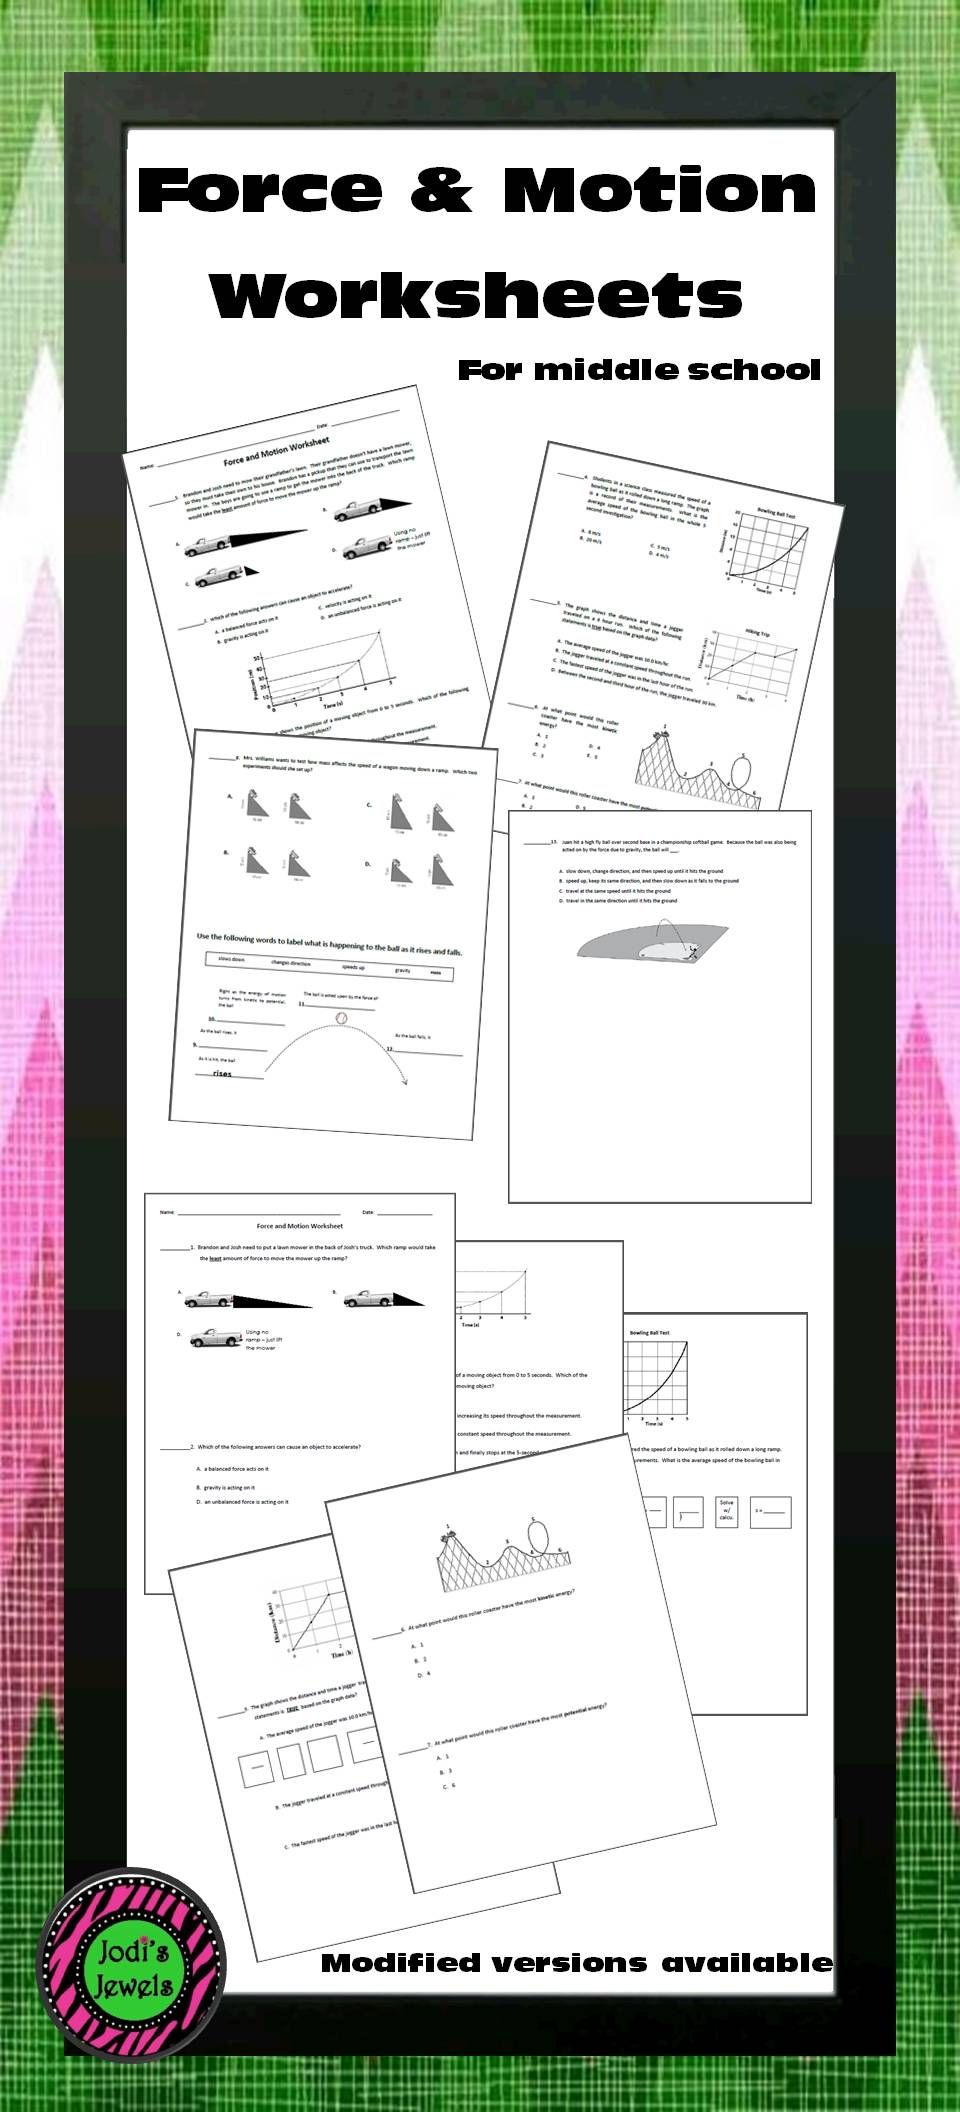 Worksheets Force And Motion Worksheets 5th Grade force and motion worksheet graphs worksheets students for middle school include interpreting data calculating speed average